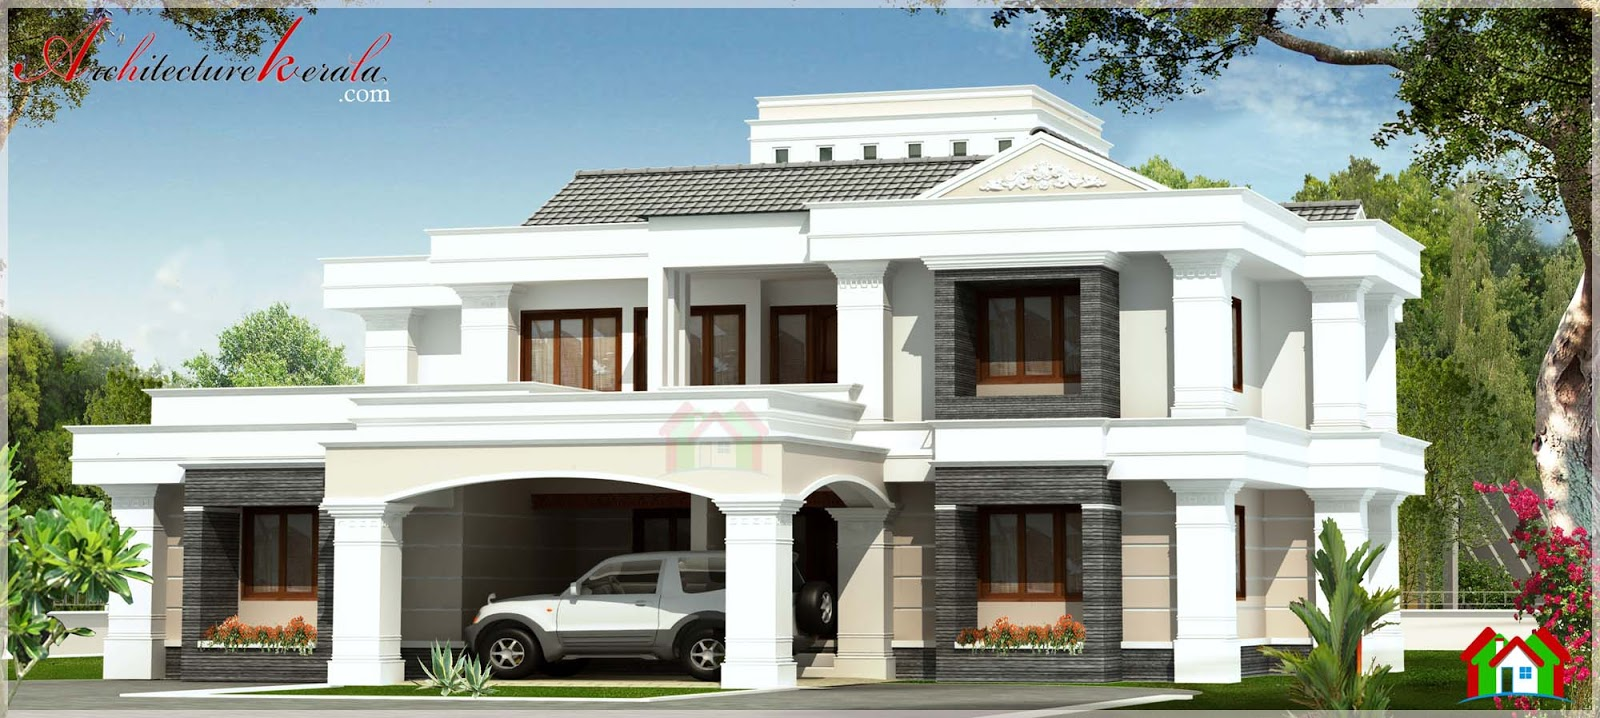 Contemporary style kerala house elevation architecture for Contemporary style homes in kerala